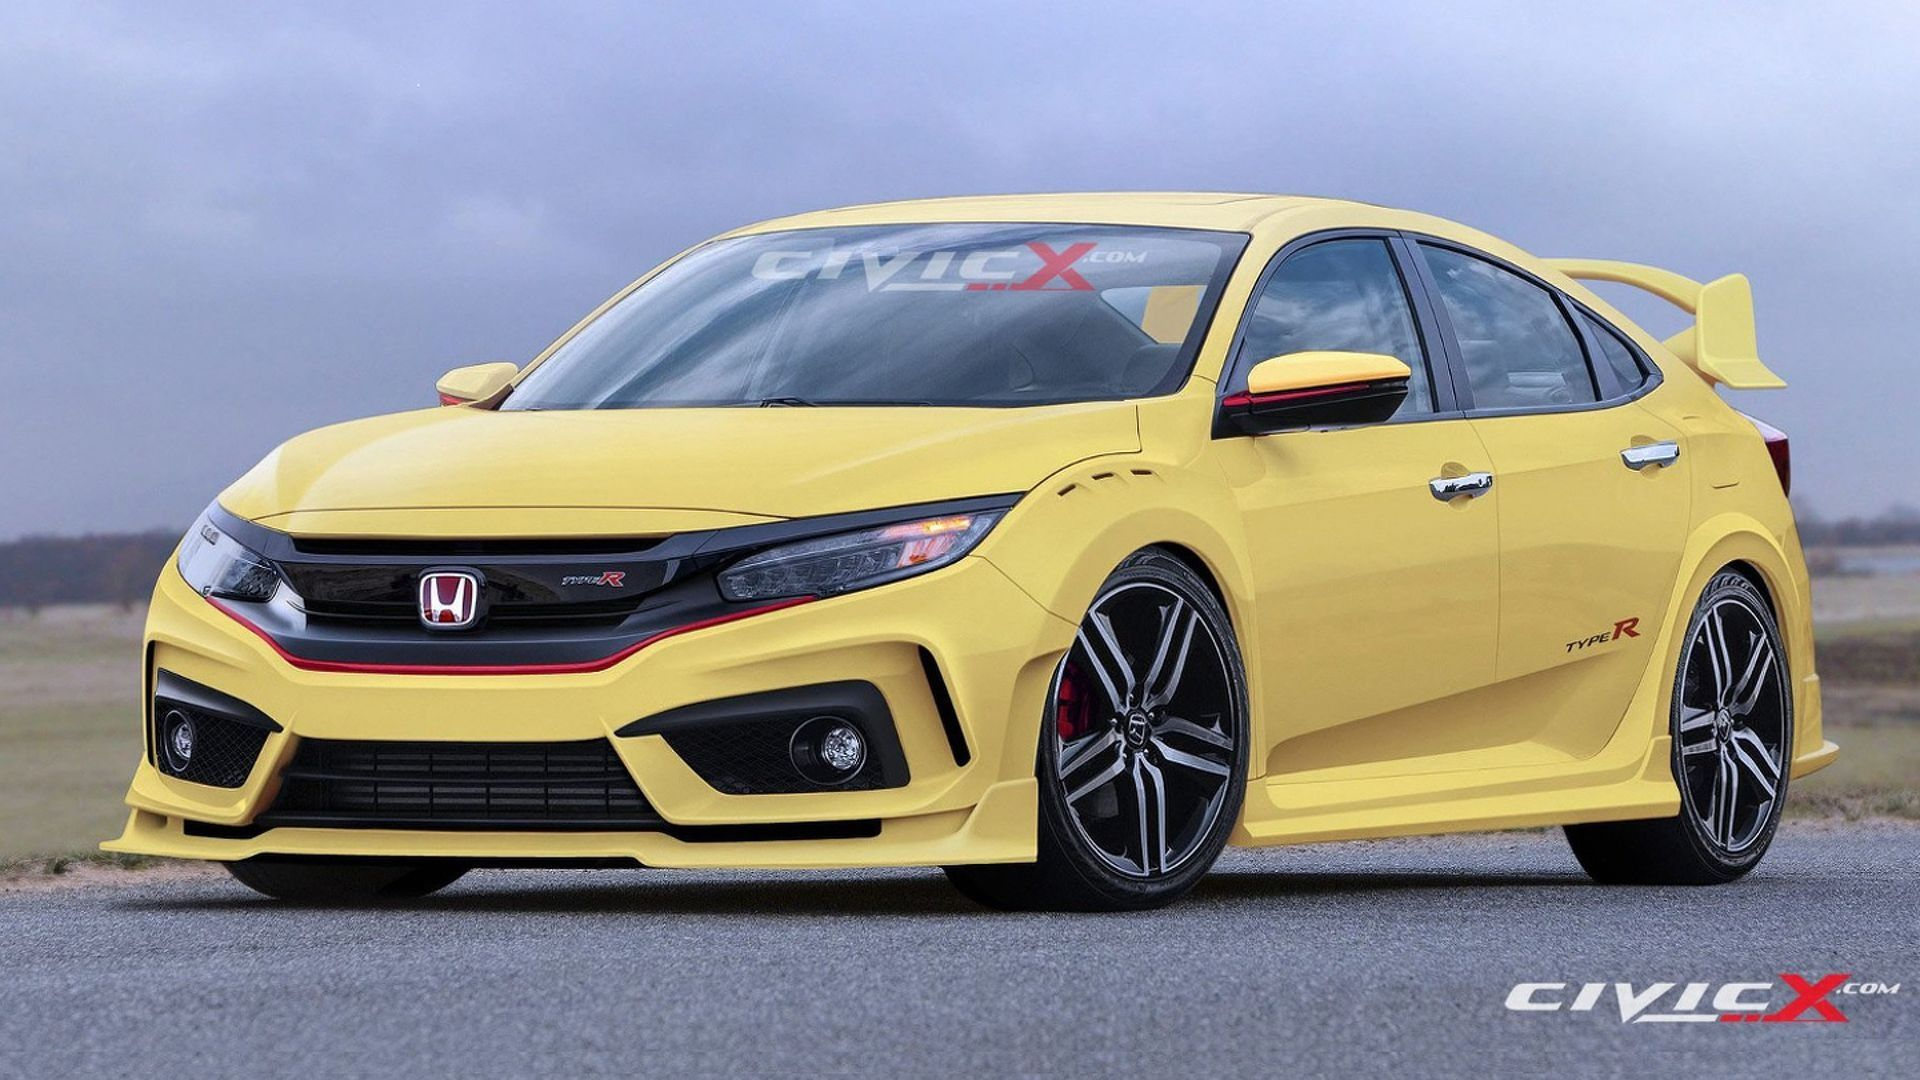 Best 2020 Honda Civic Si Type R Engine Cars Review 2019 Honda Civic Type R Honda Civic Si Honda Civic 2016